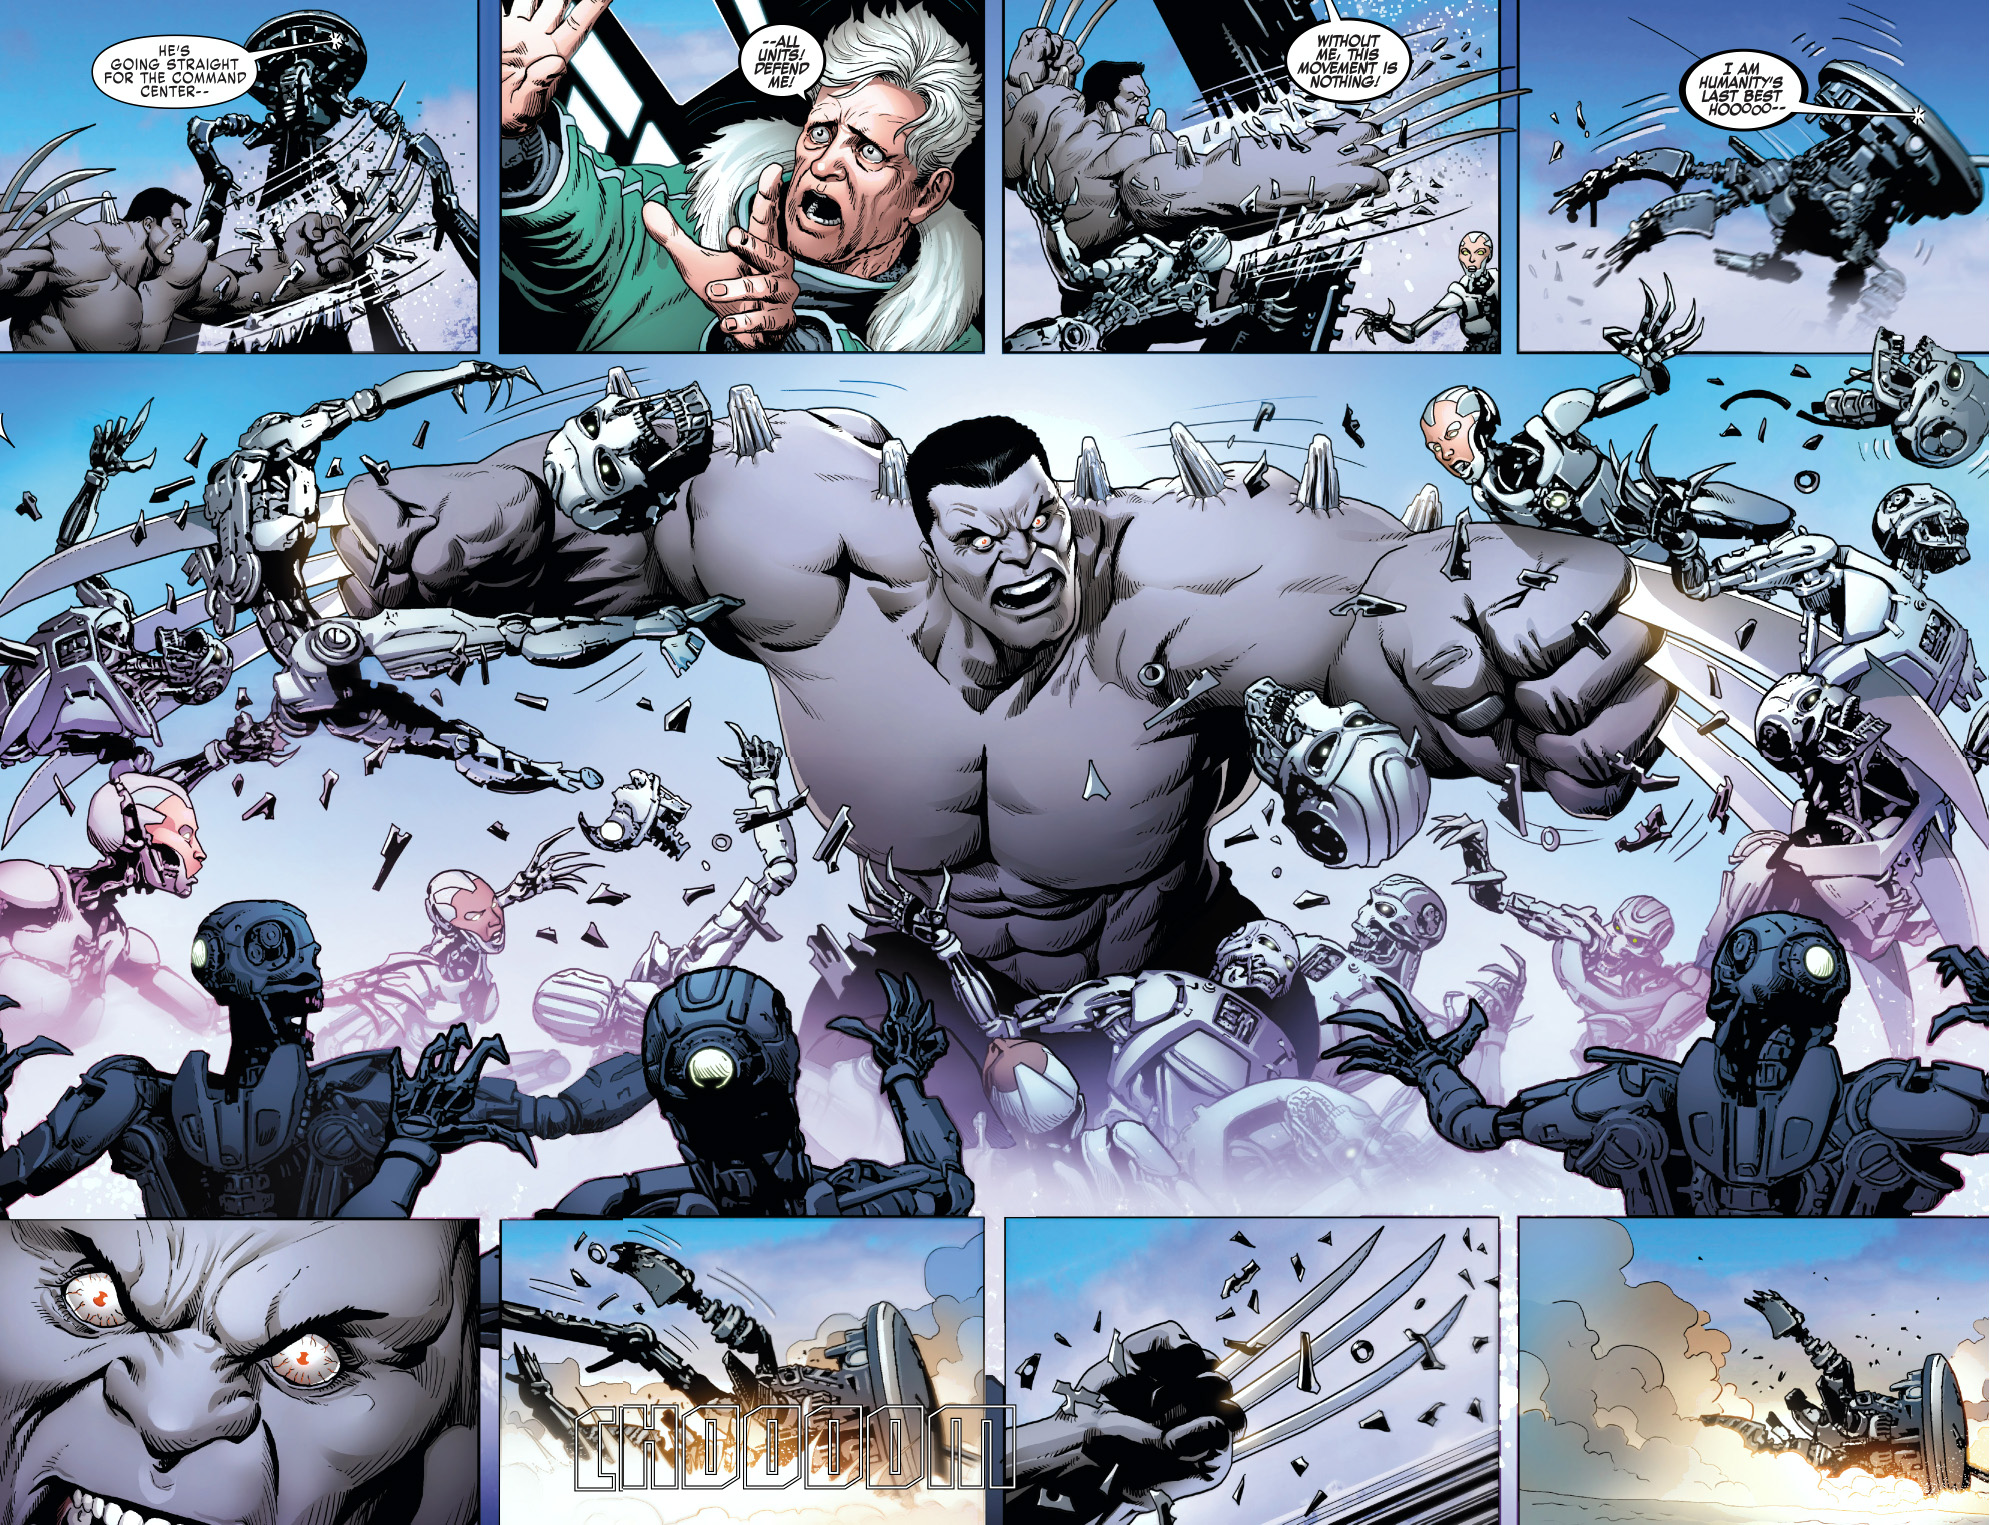 William Stryker vs